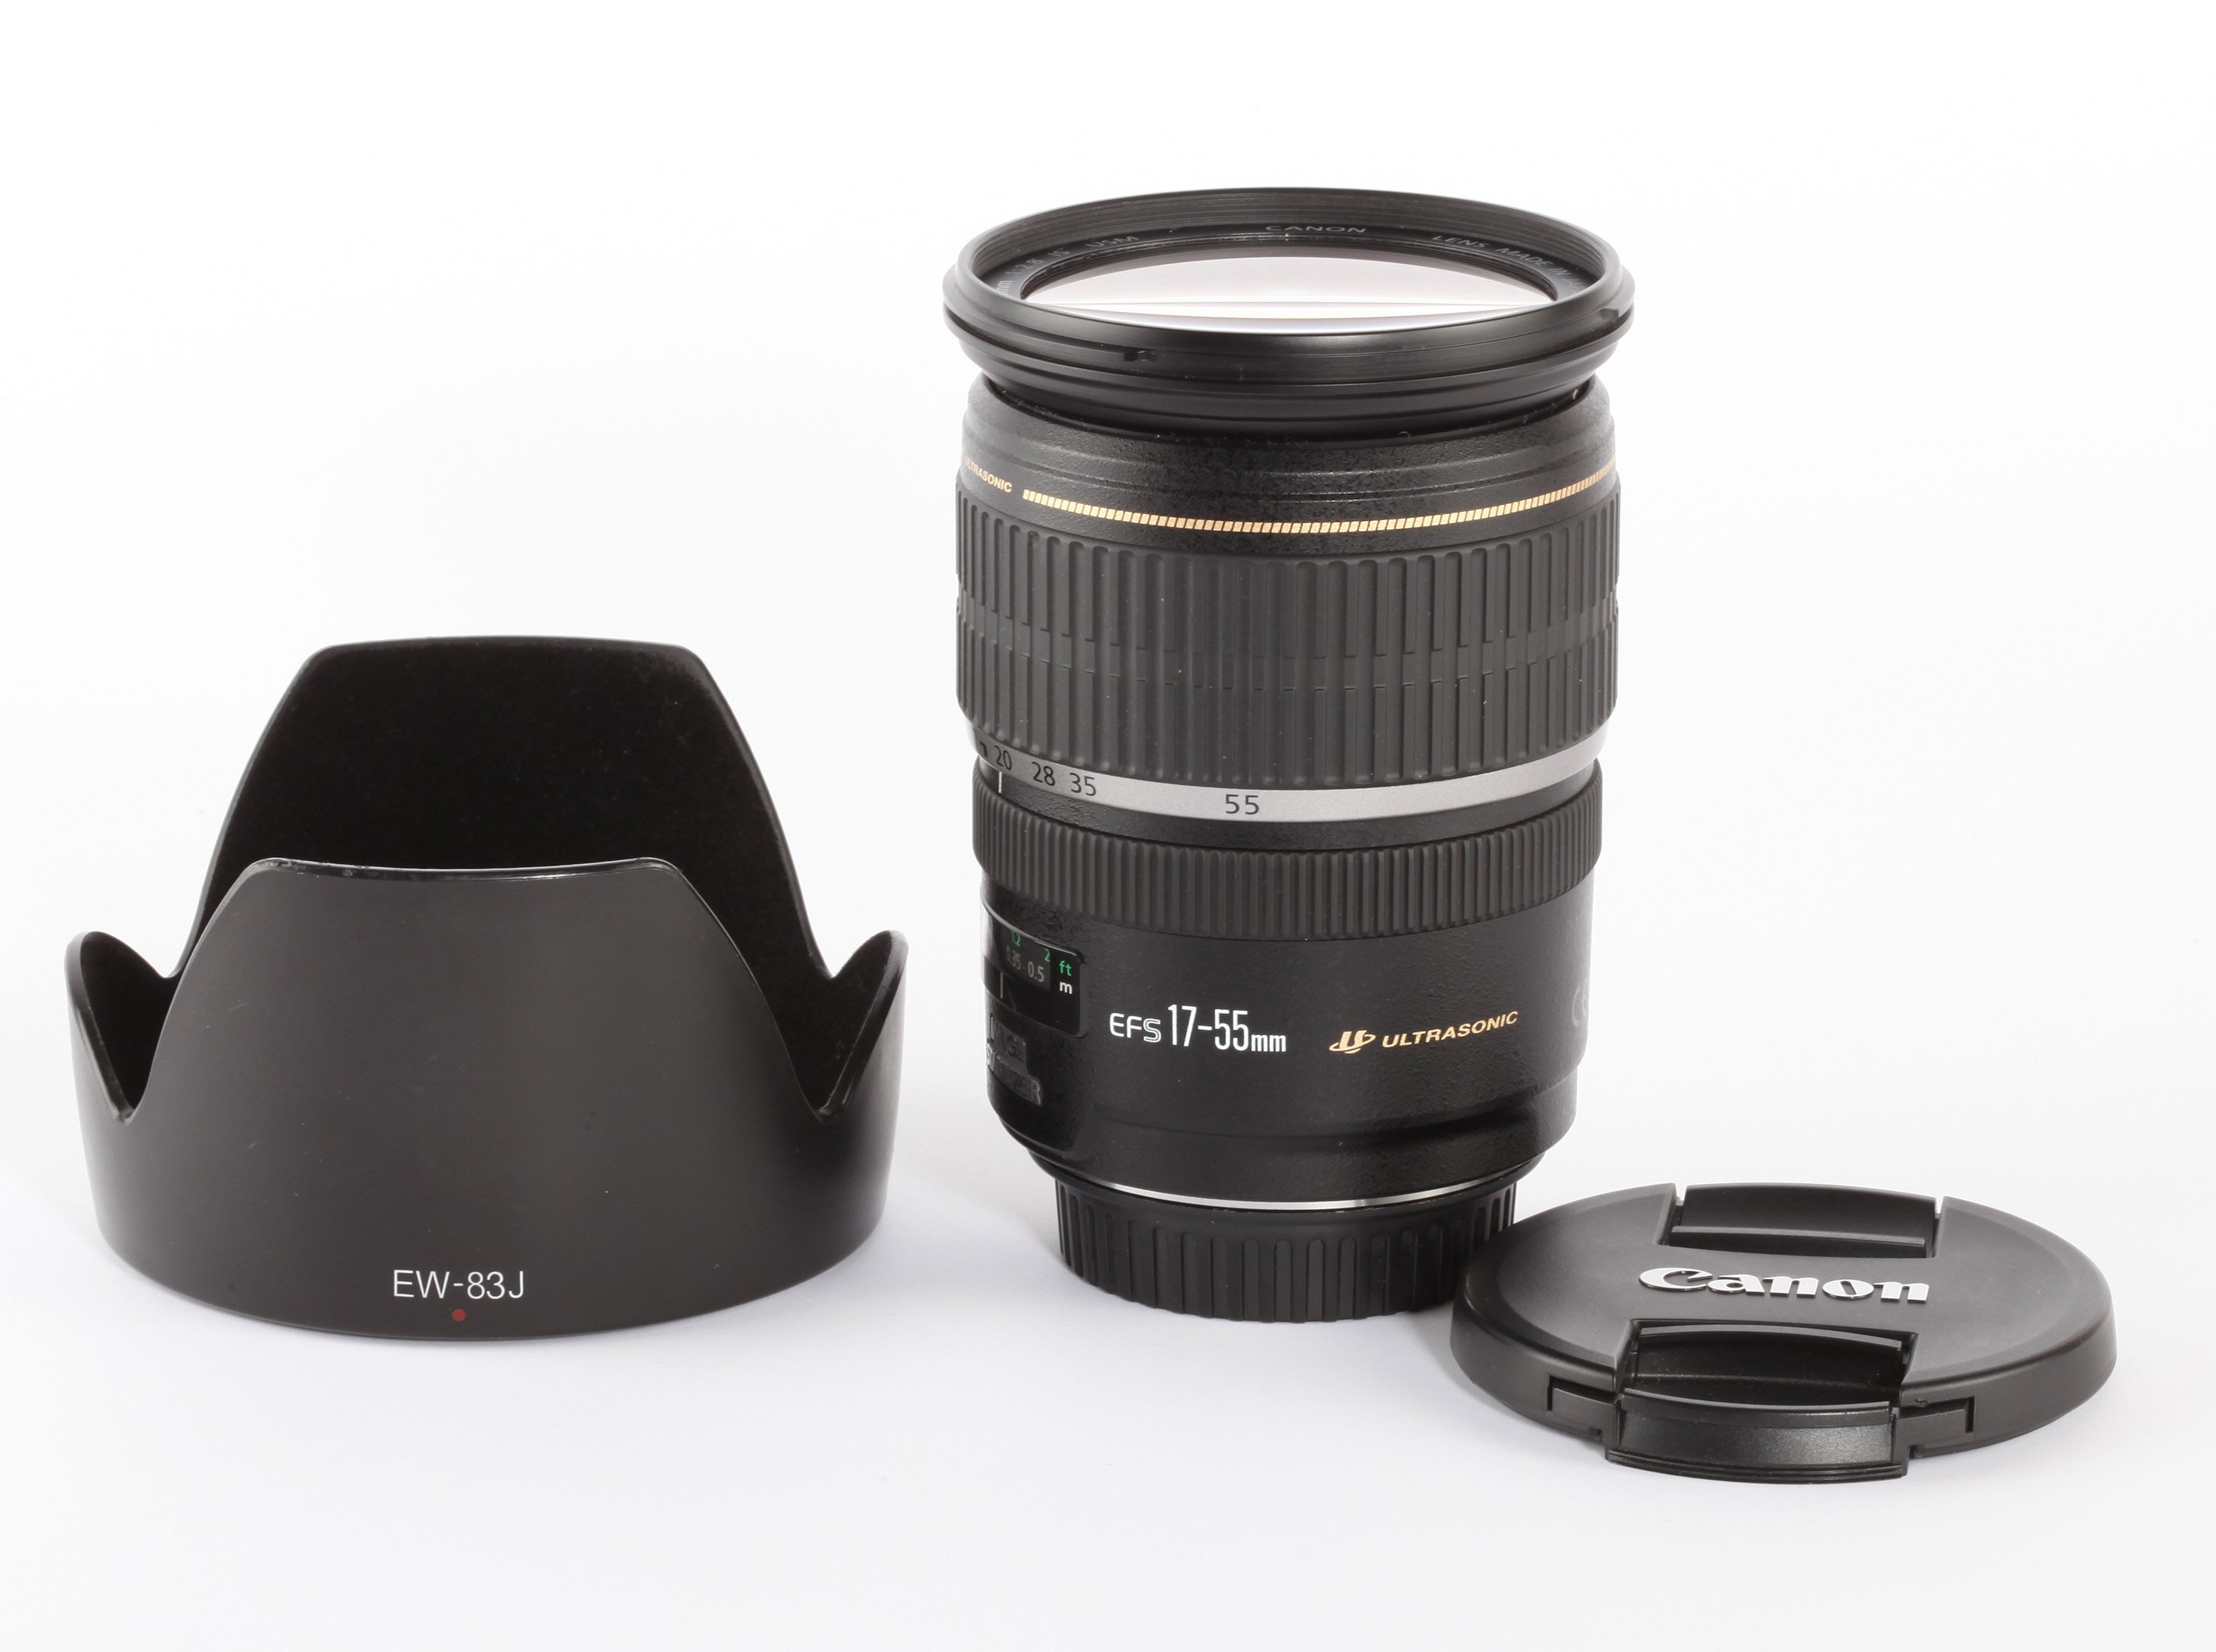 Canon EFS 17-55mm 2,8 IS USM